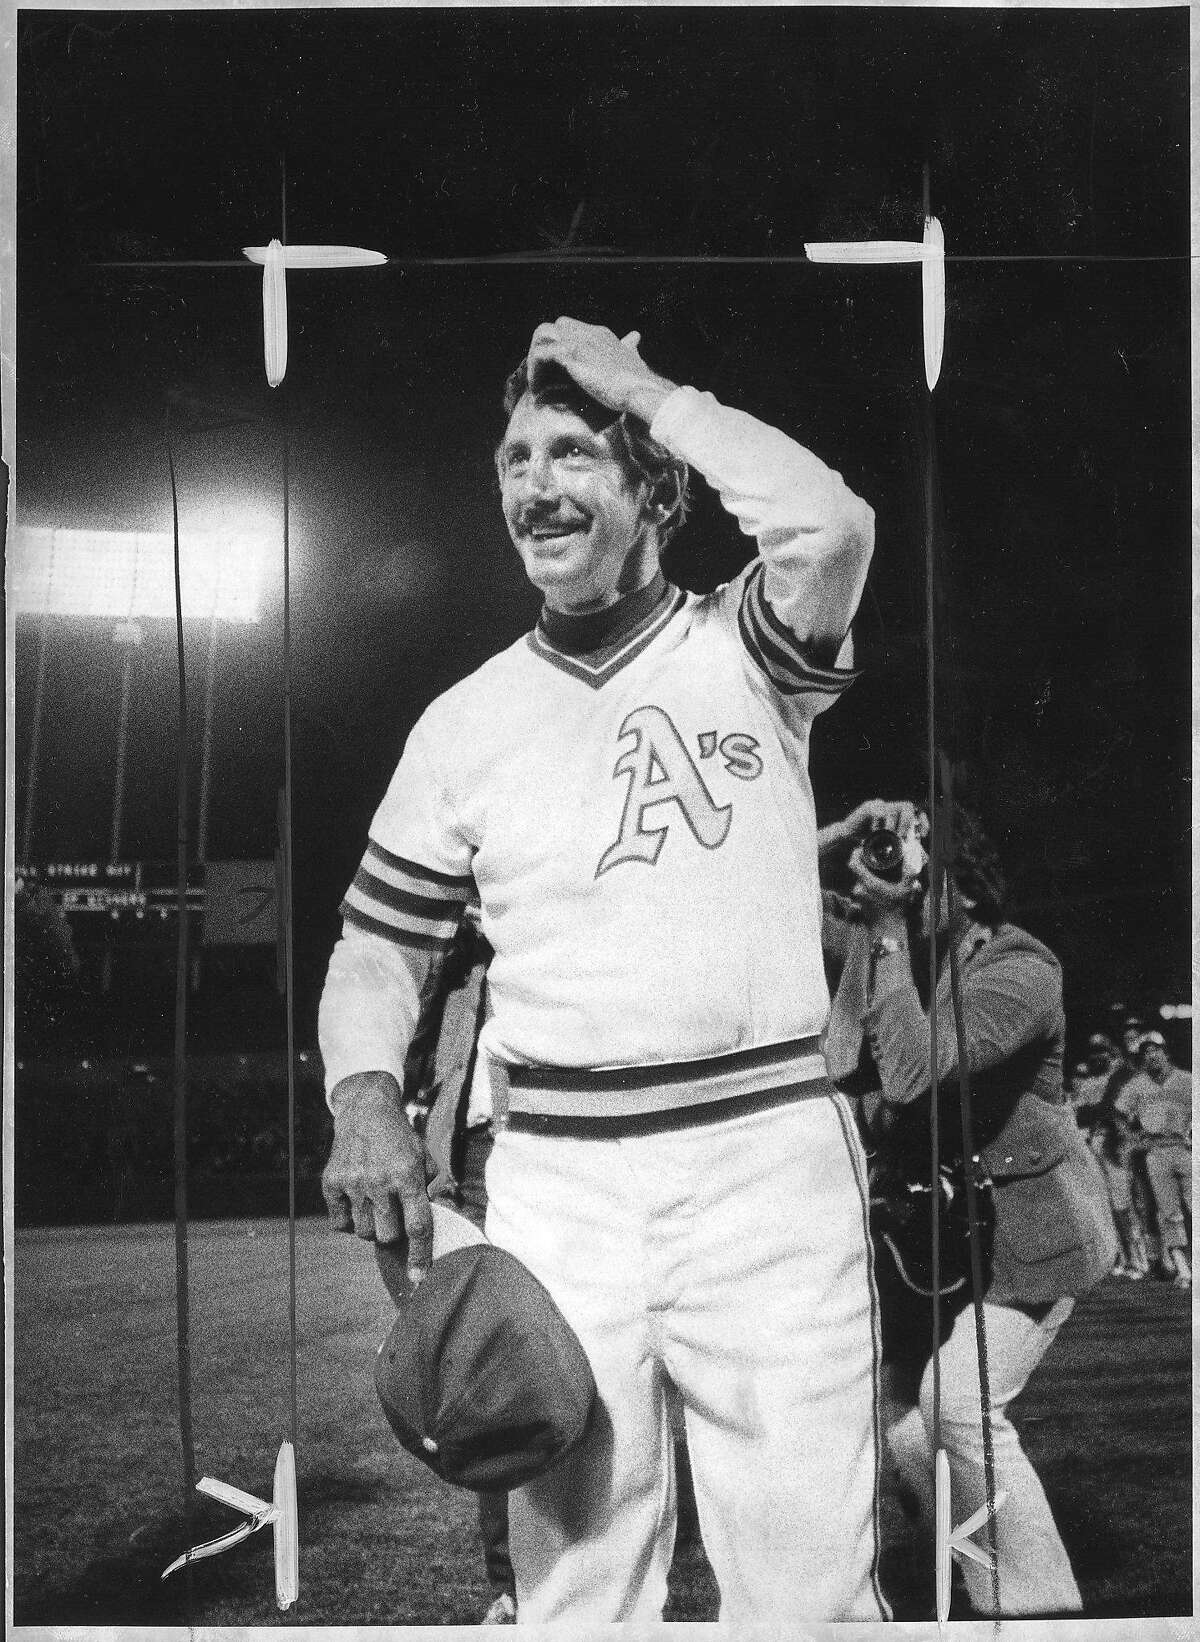 Oakland Athletics Manager Billy Martin gets a standing ovation after the A's game on Saturday, April 18, 1981, at the Oakland Coliseum in Oakland, Calif.